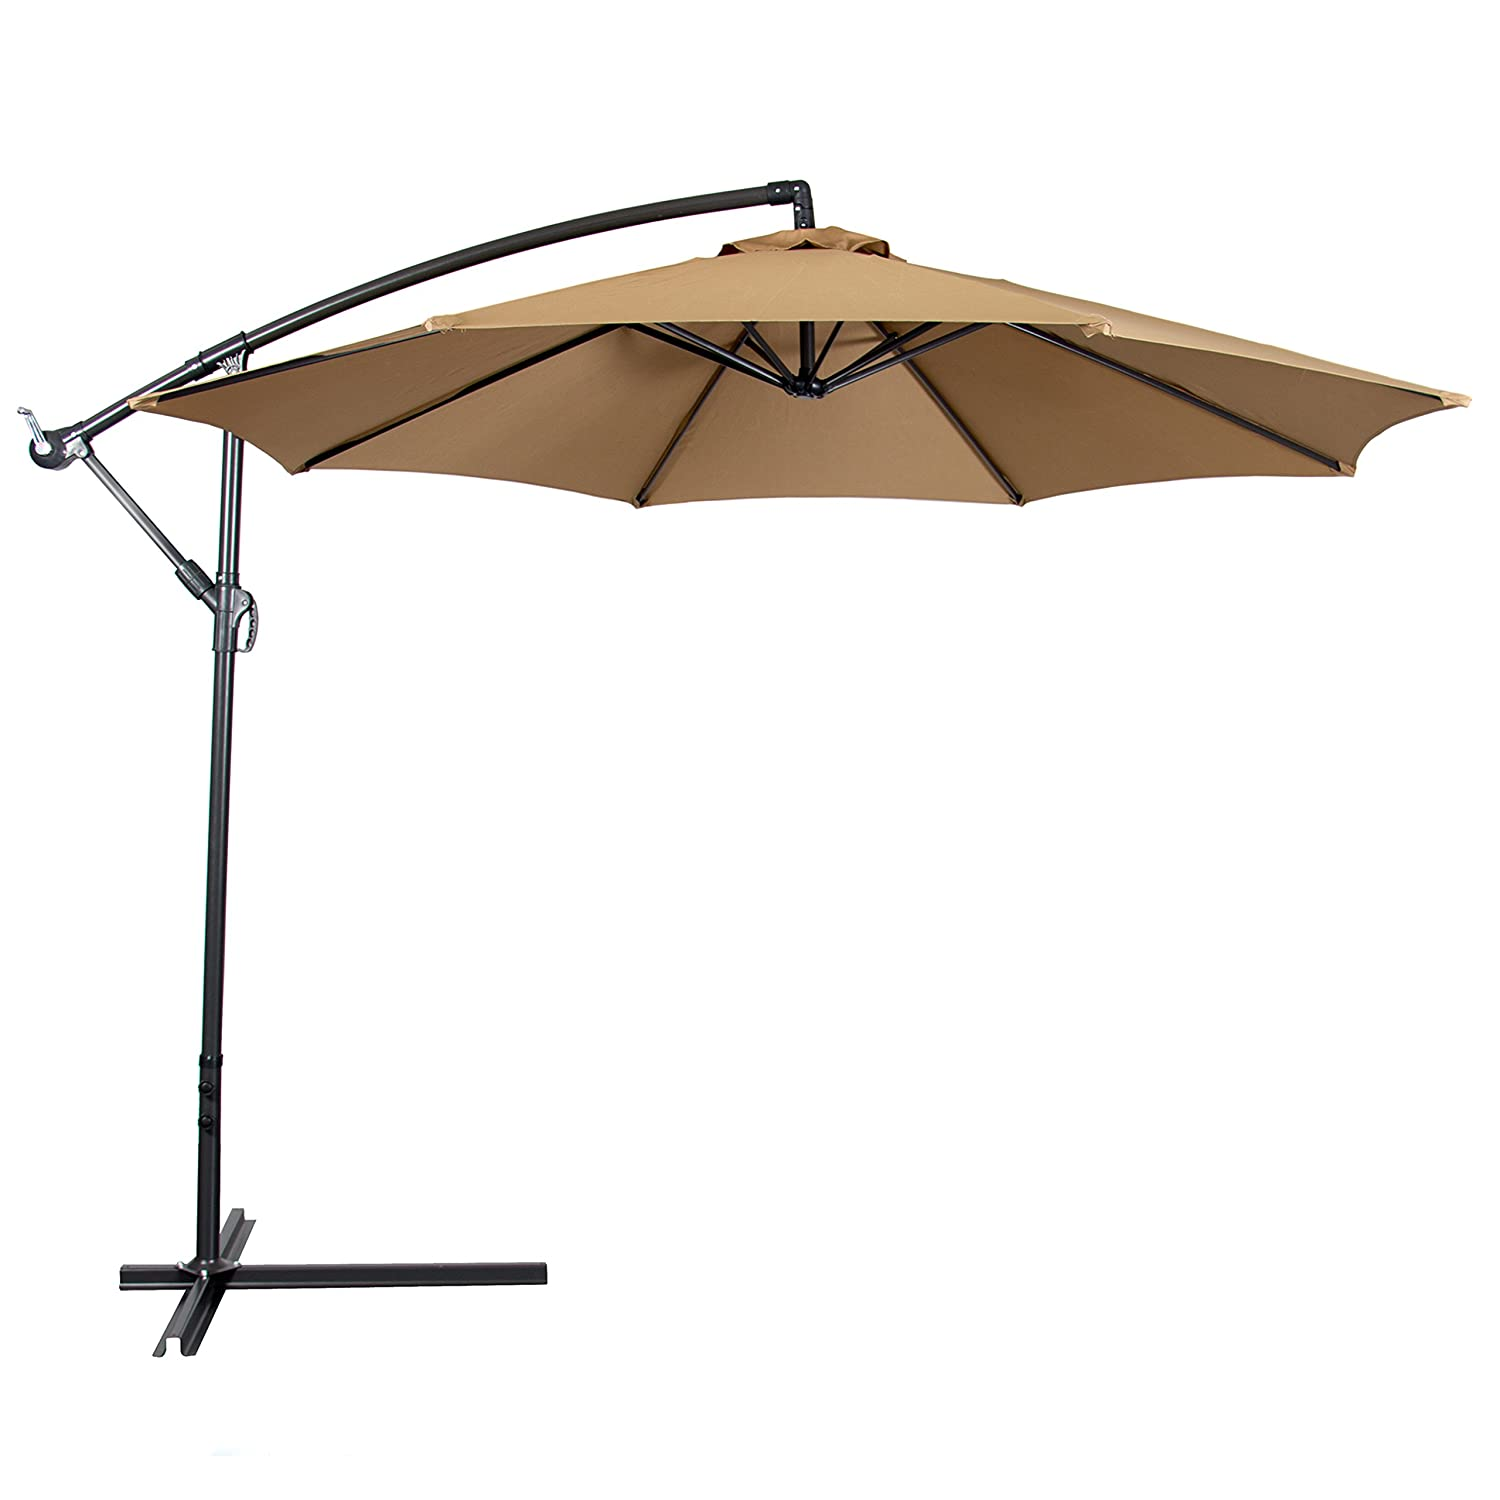 Best Choice Products Offset 10' Hanging Outdoor Market New Tan Patio  Umbrella, Beige - Patio Umbrellas Amazon.com